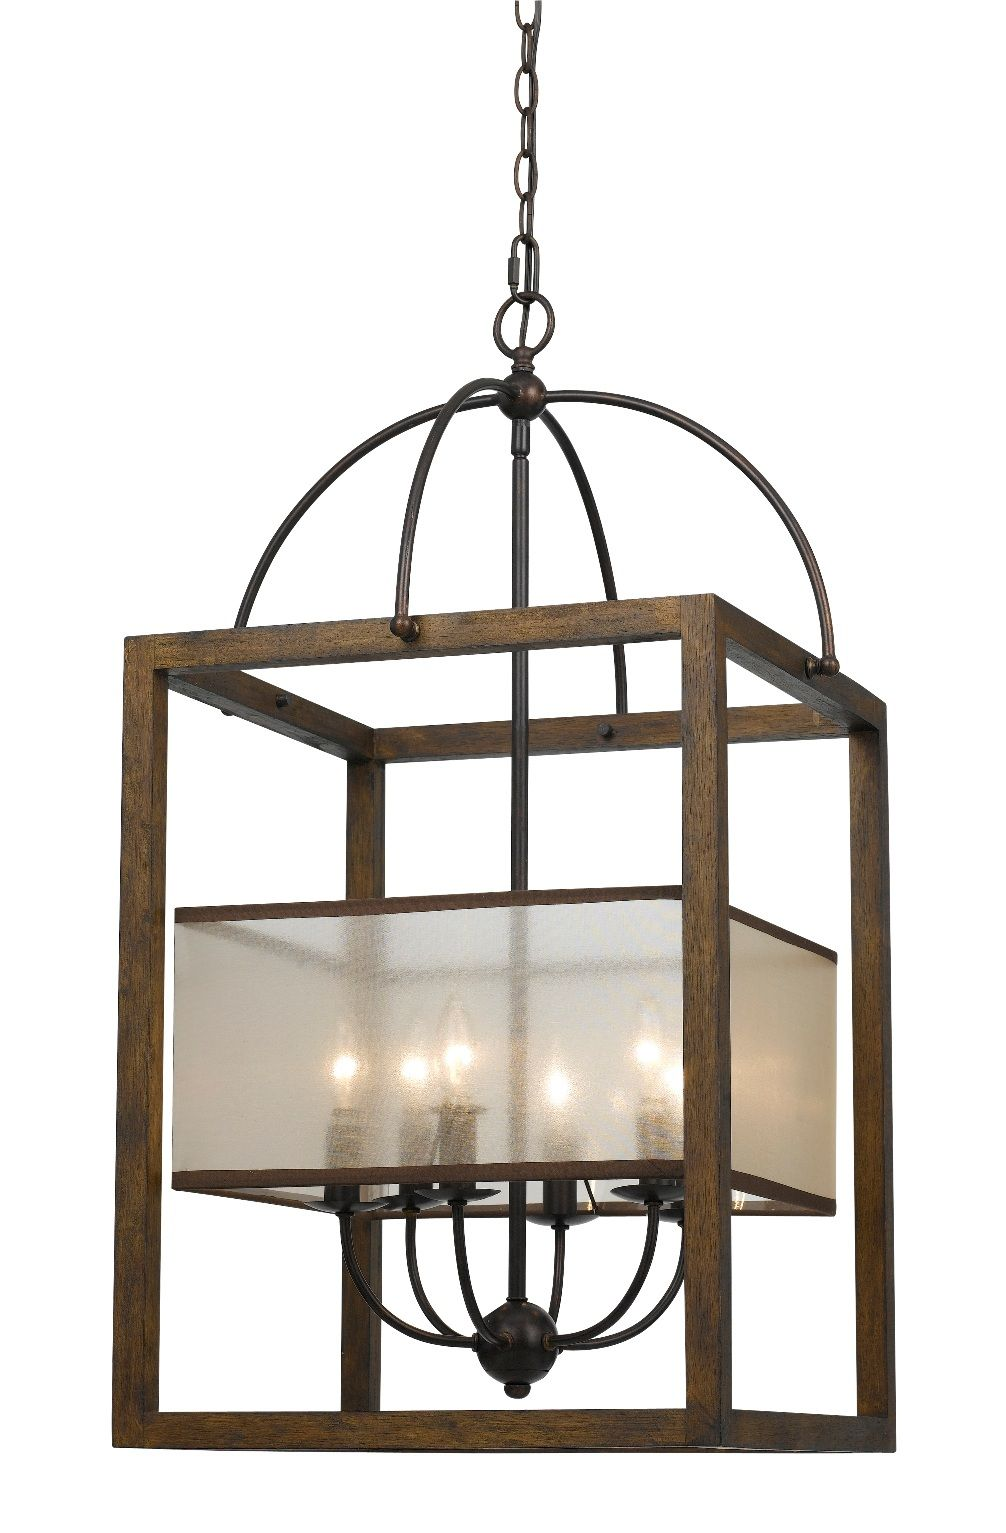 p Fine Quality Hand Crafted Lighting Made Of Wood Iron Silkbr – Wood Iron Chandelier